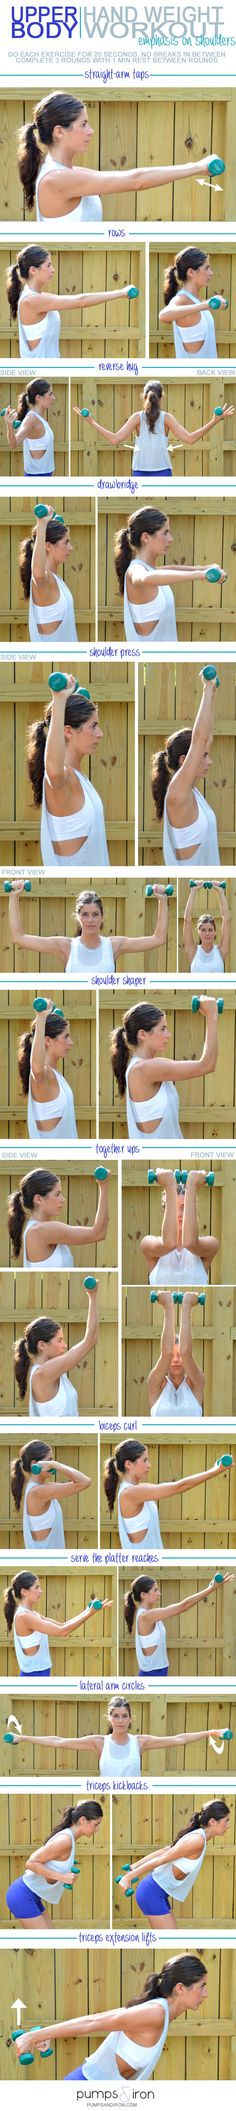 Fitness Motivation : Upper-Body Hand Weight Workout (emphasis on shoulders) Helps to keep strong thro. - All Fitness Fitness Workouts, Fitness Motivation, Sport Fitness, Fitness Diet, Fun Workouts, At Home Workouts, Health Fitness, Workout Diet, Workout Routines